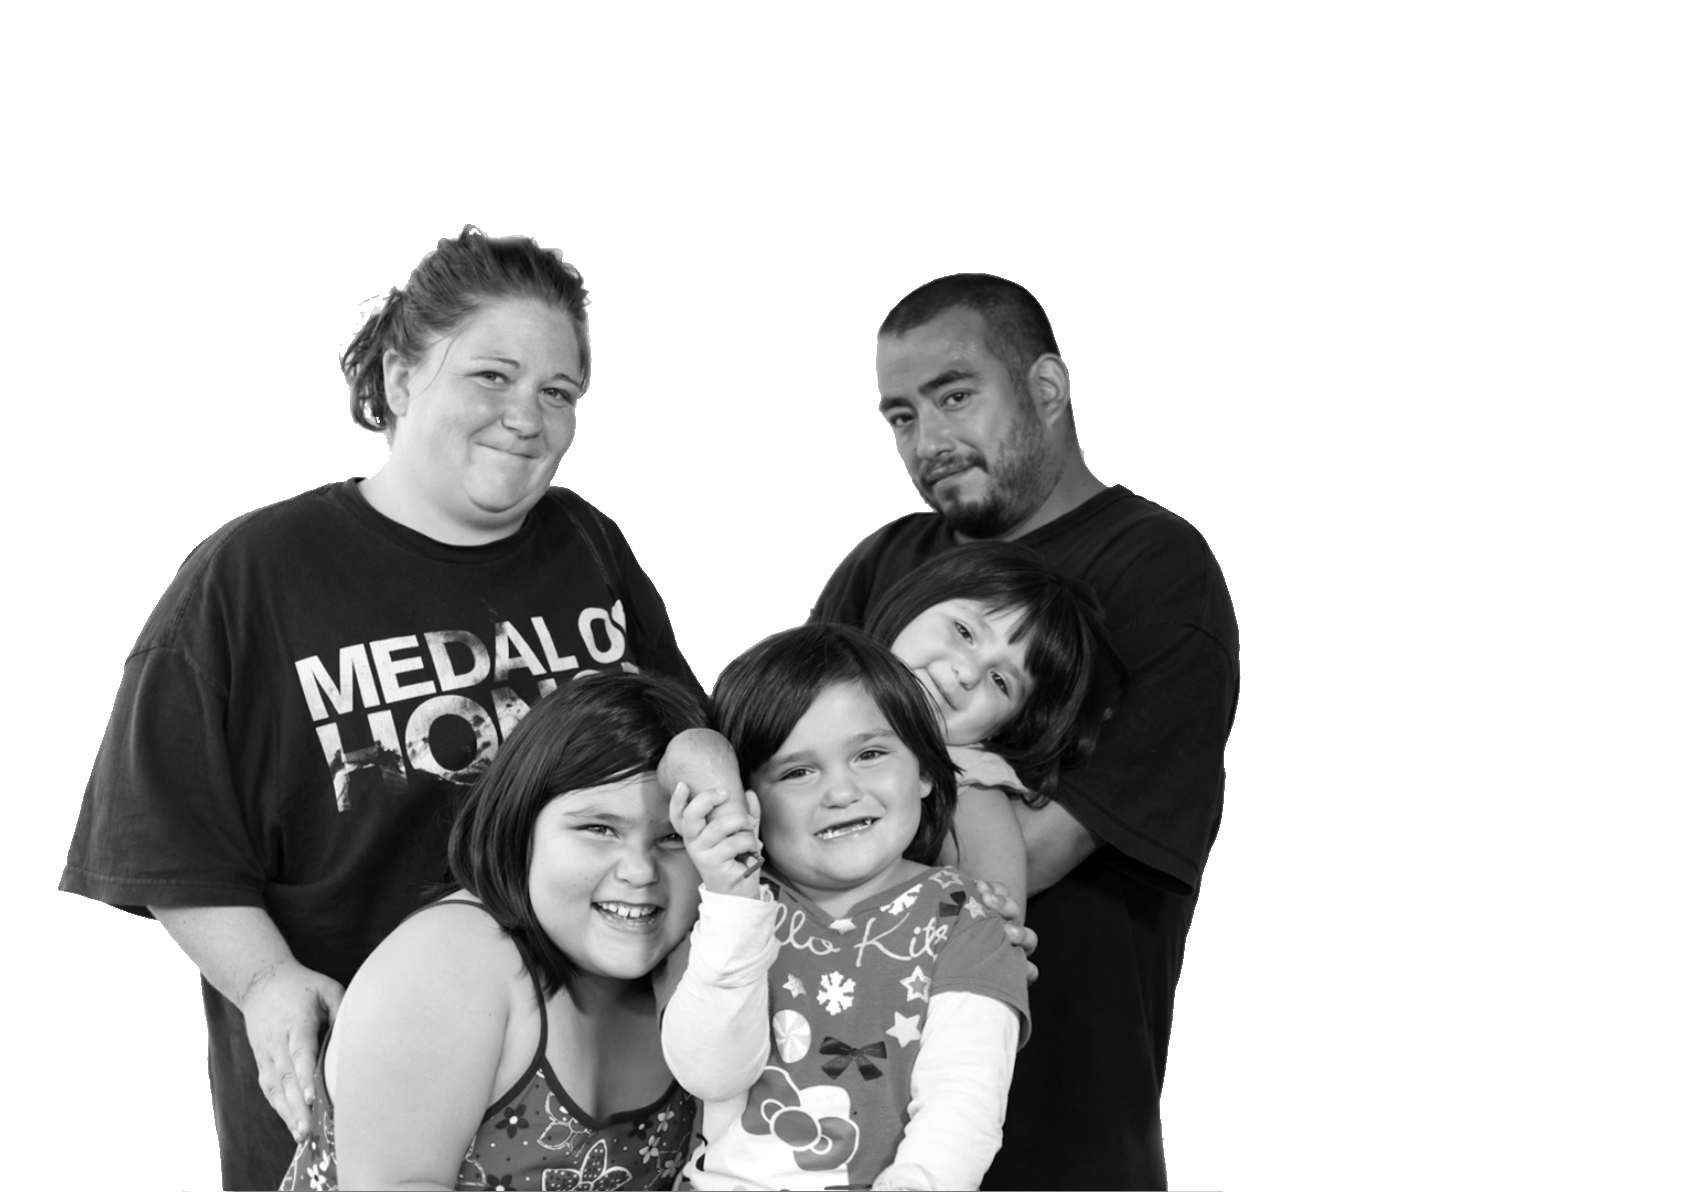 Kerri & family, combined family of six living with her mother to share living expenses